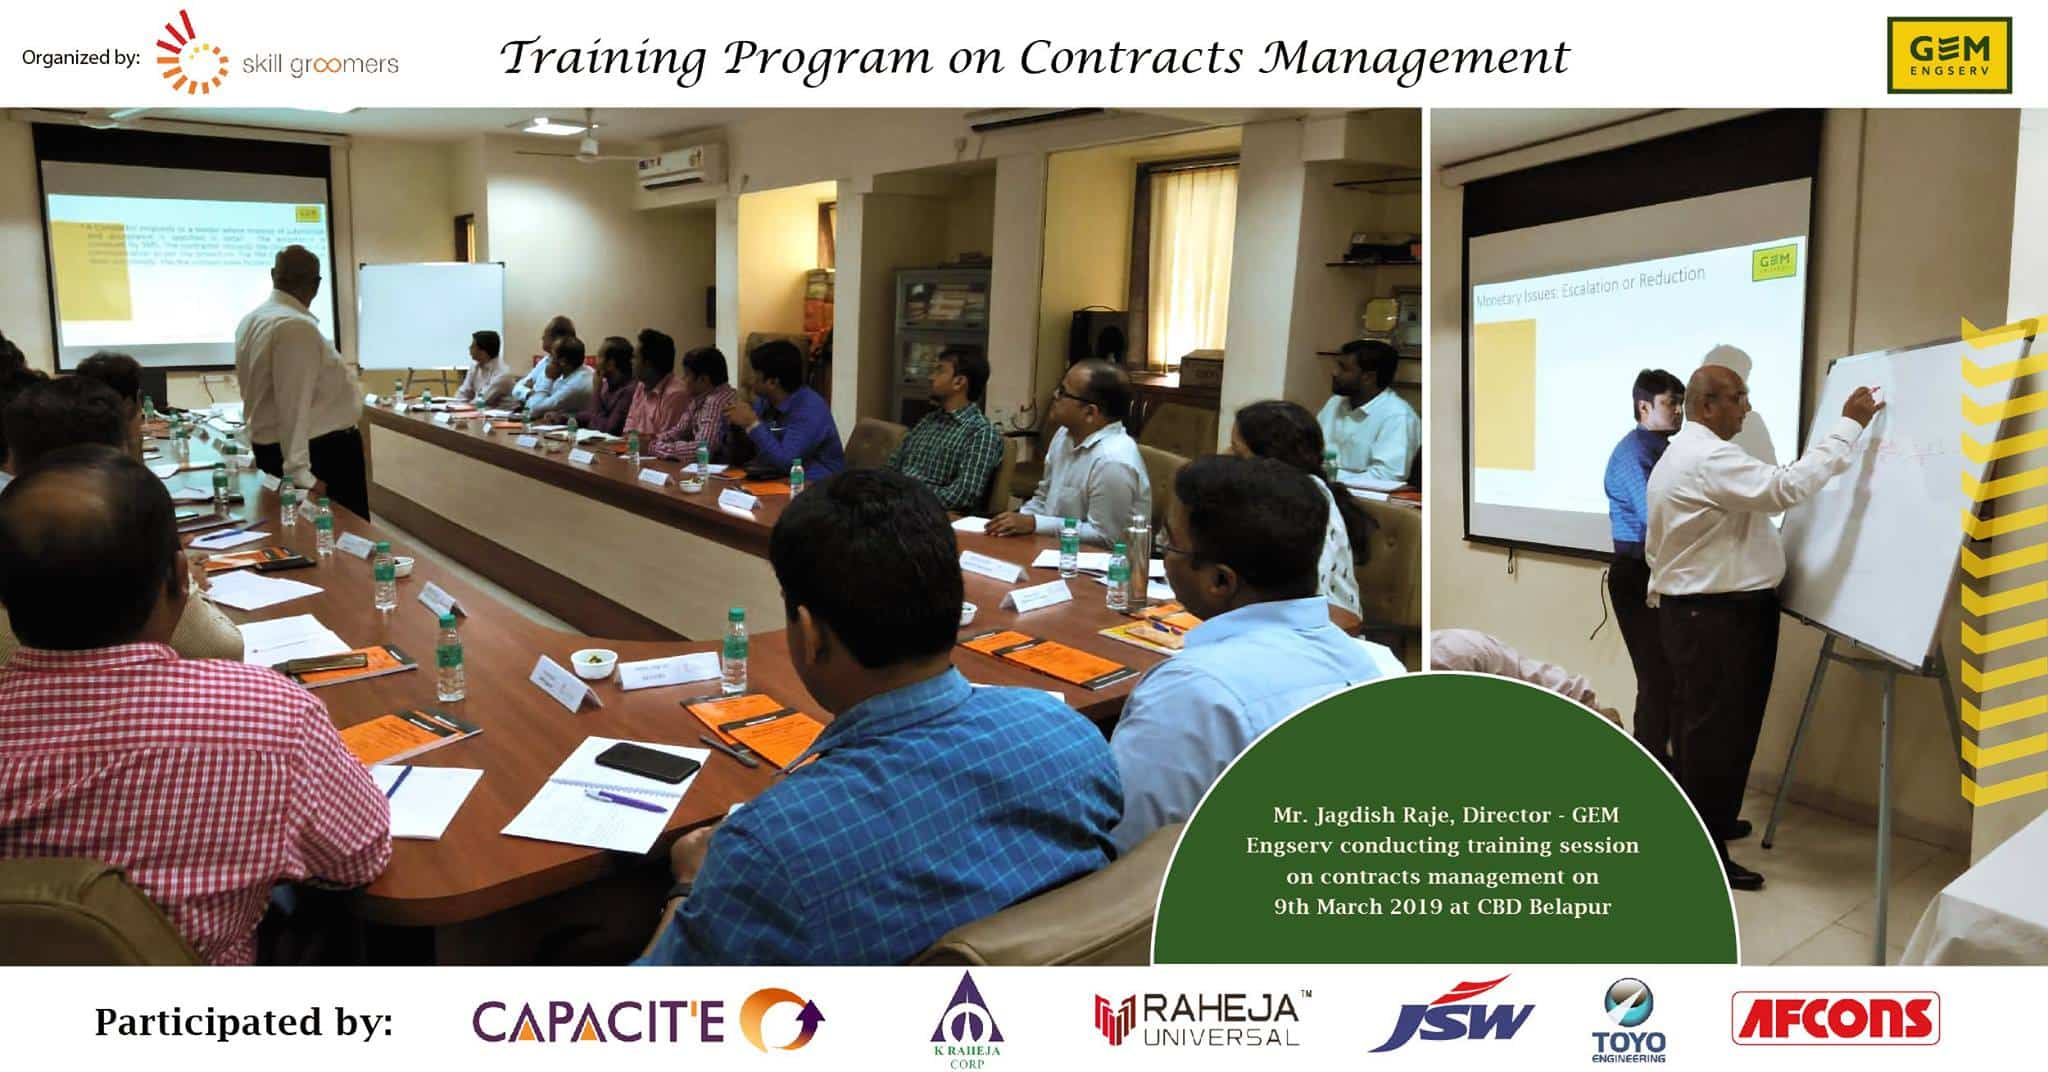 Training Program on Contracts Management